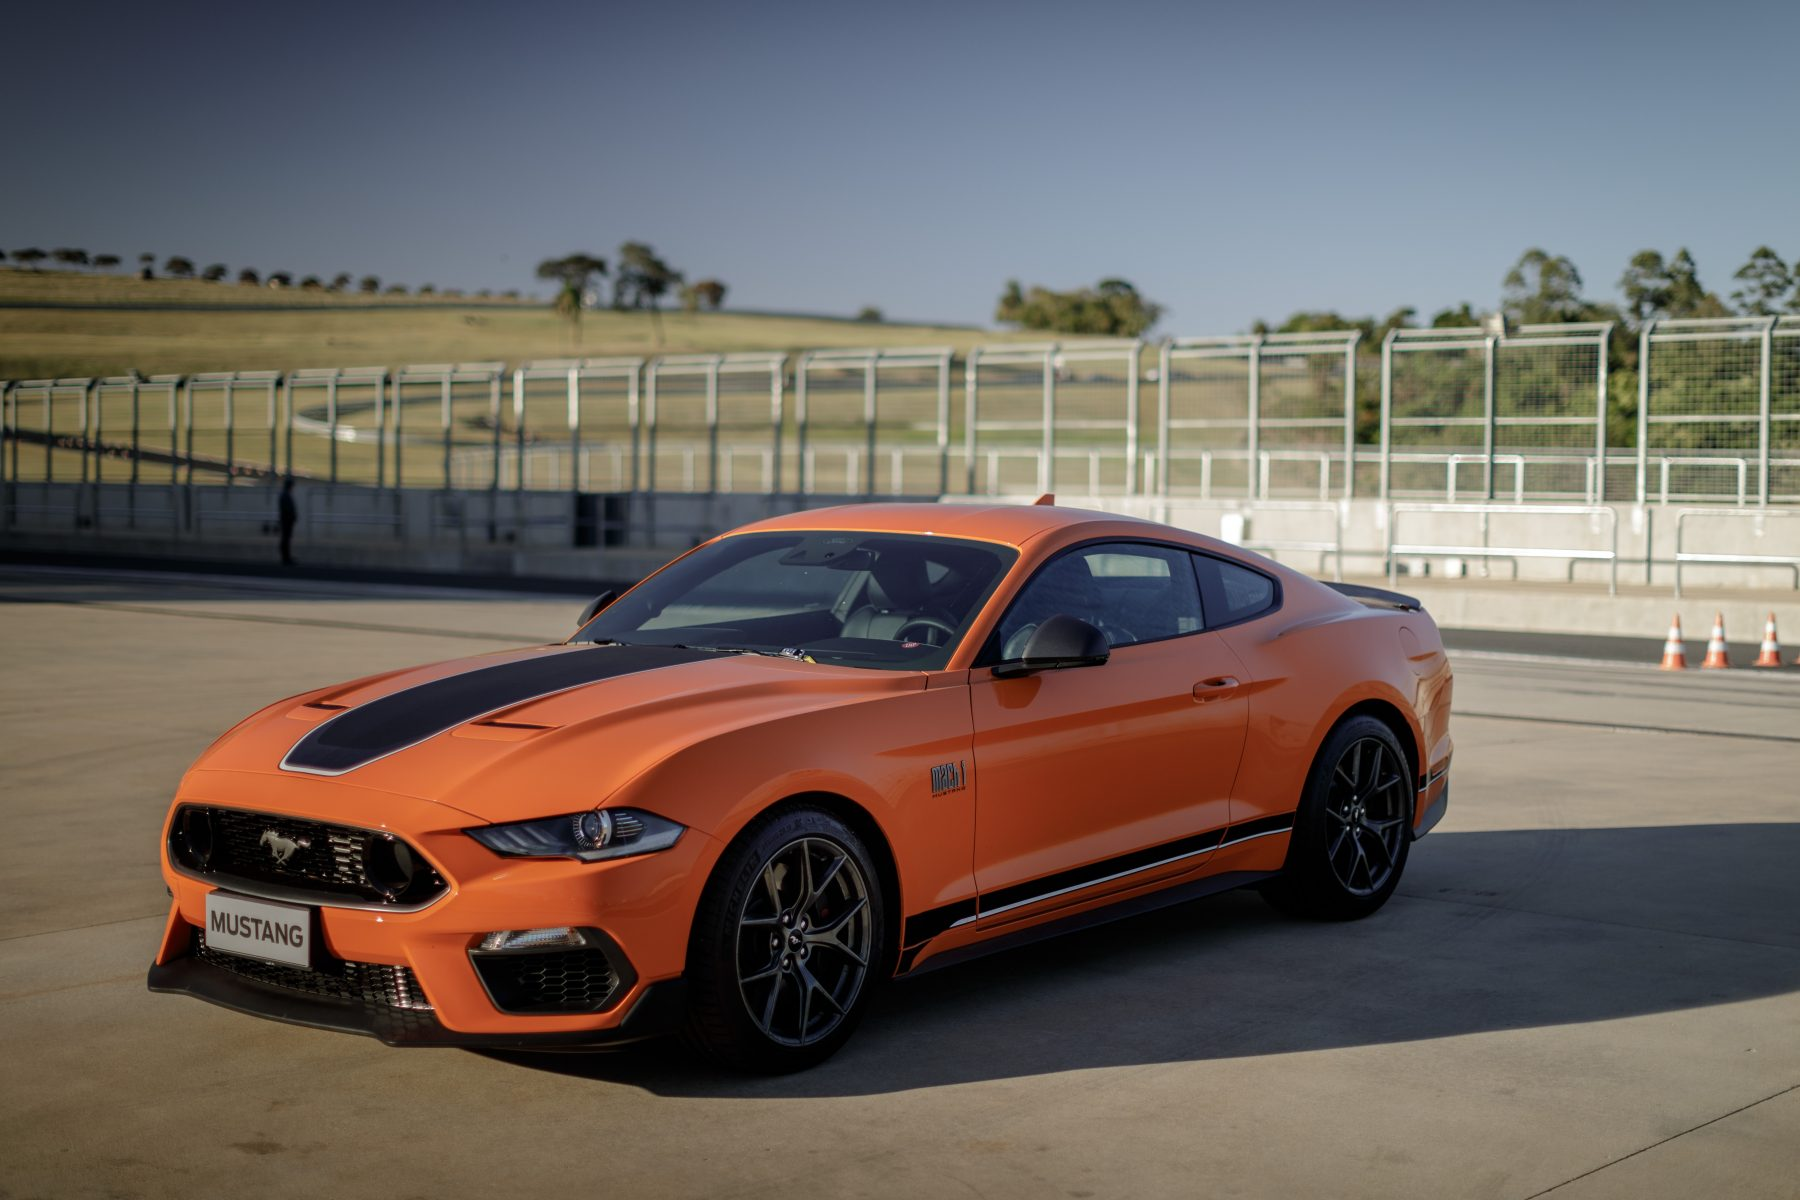 ford mustang mach1 vermelho lateral 9917